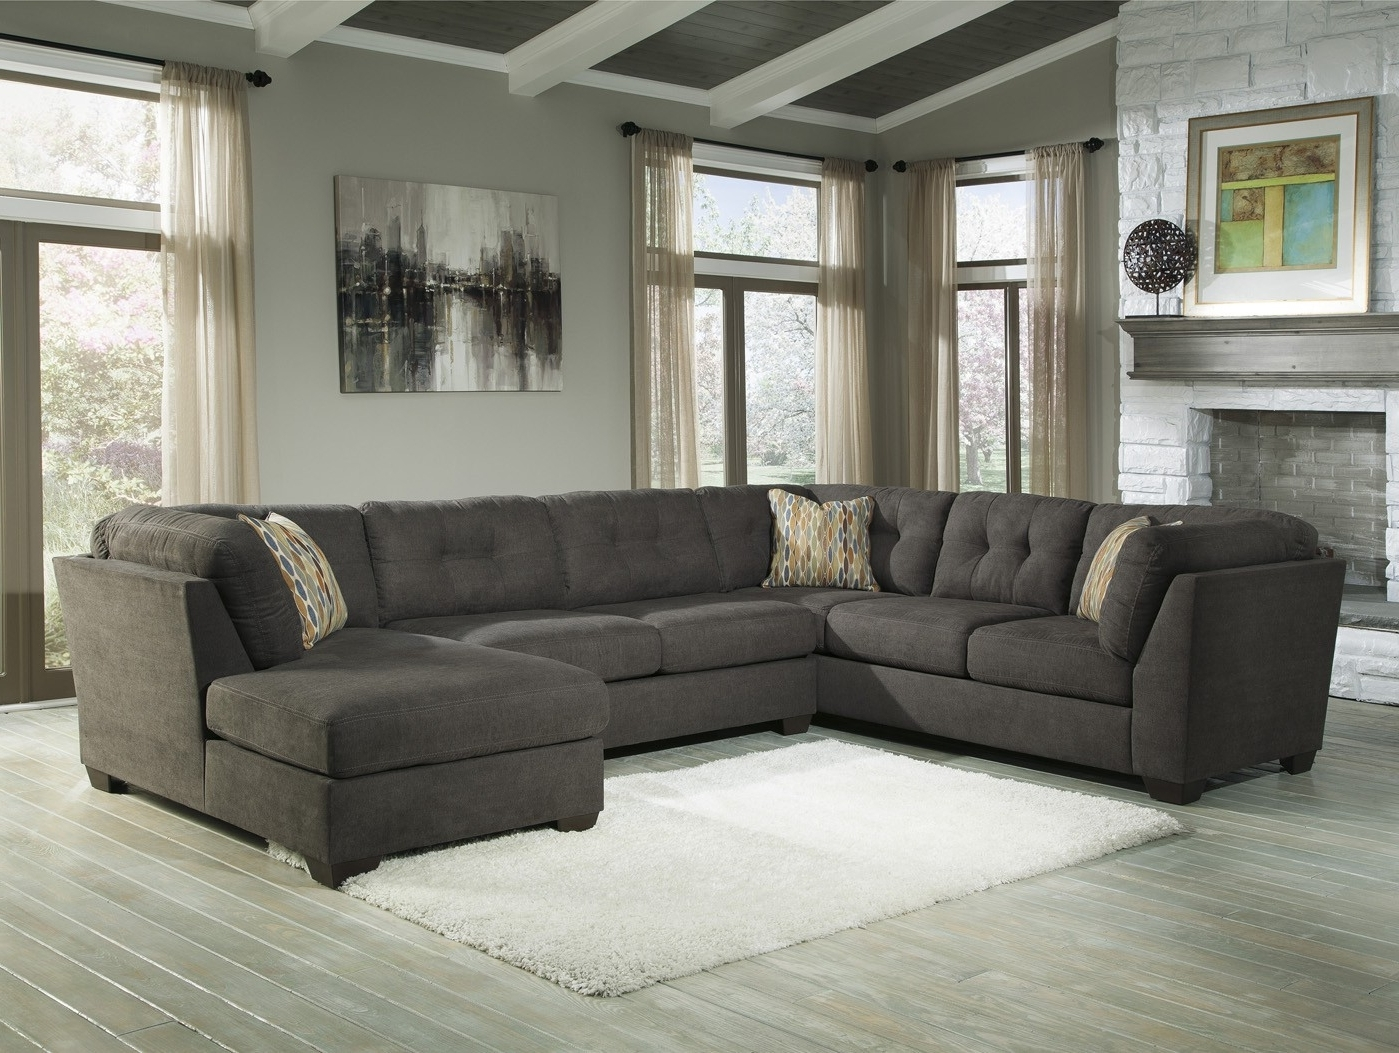 Elk Grove Ca Sectional Sofas Regarding Most Popular Delta City Steel 3 Piece Sectional Sofa With Right Arm Facing (Gallery 7 of 15)